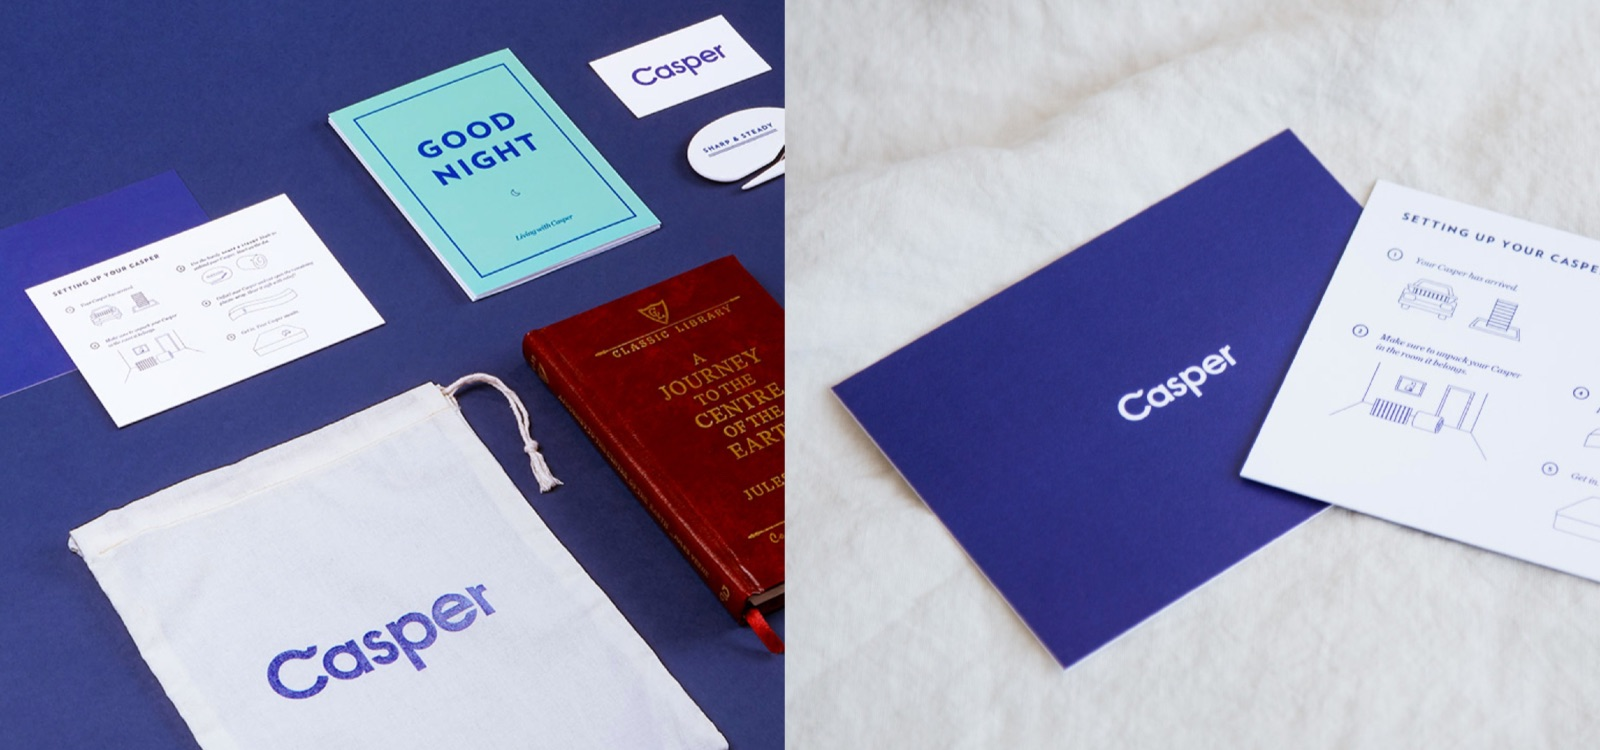 10 Amazing Branding Agencies Every Designer Should Follow